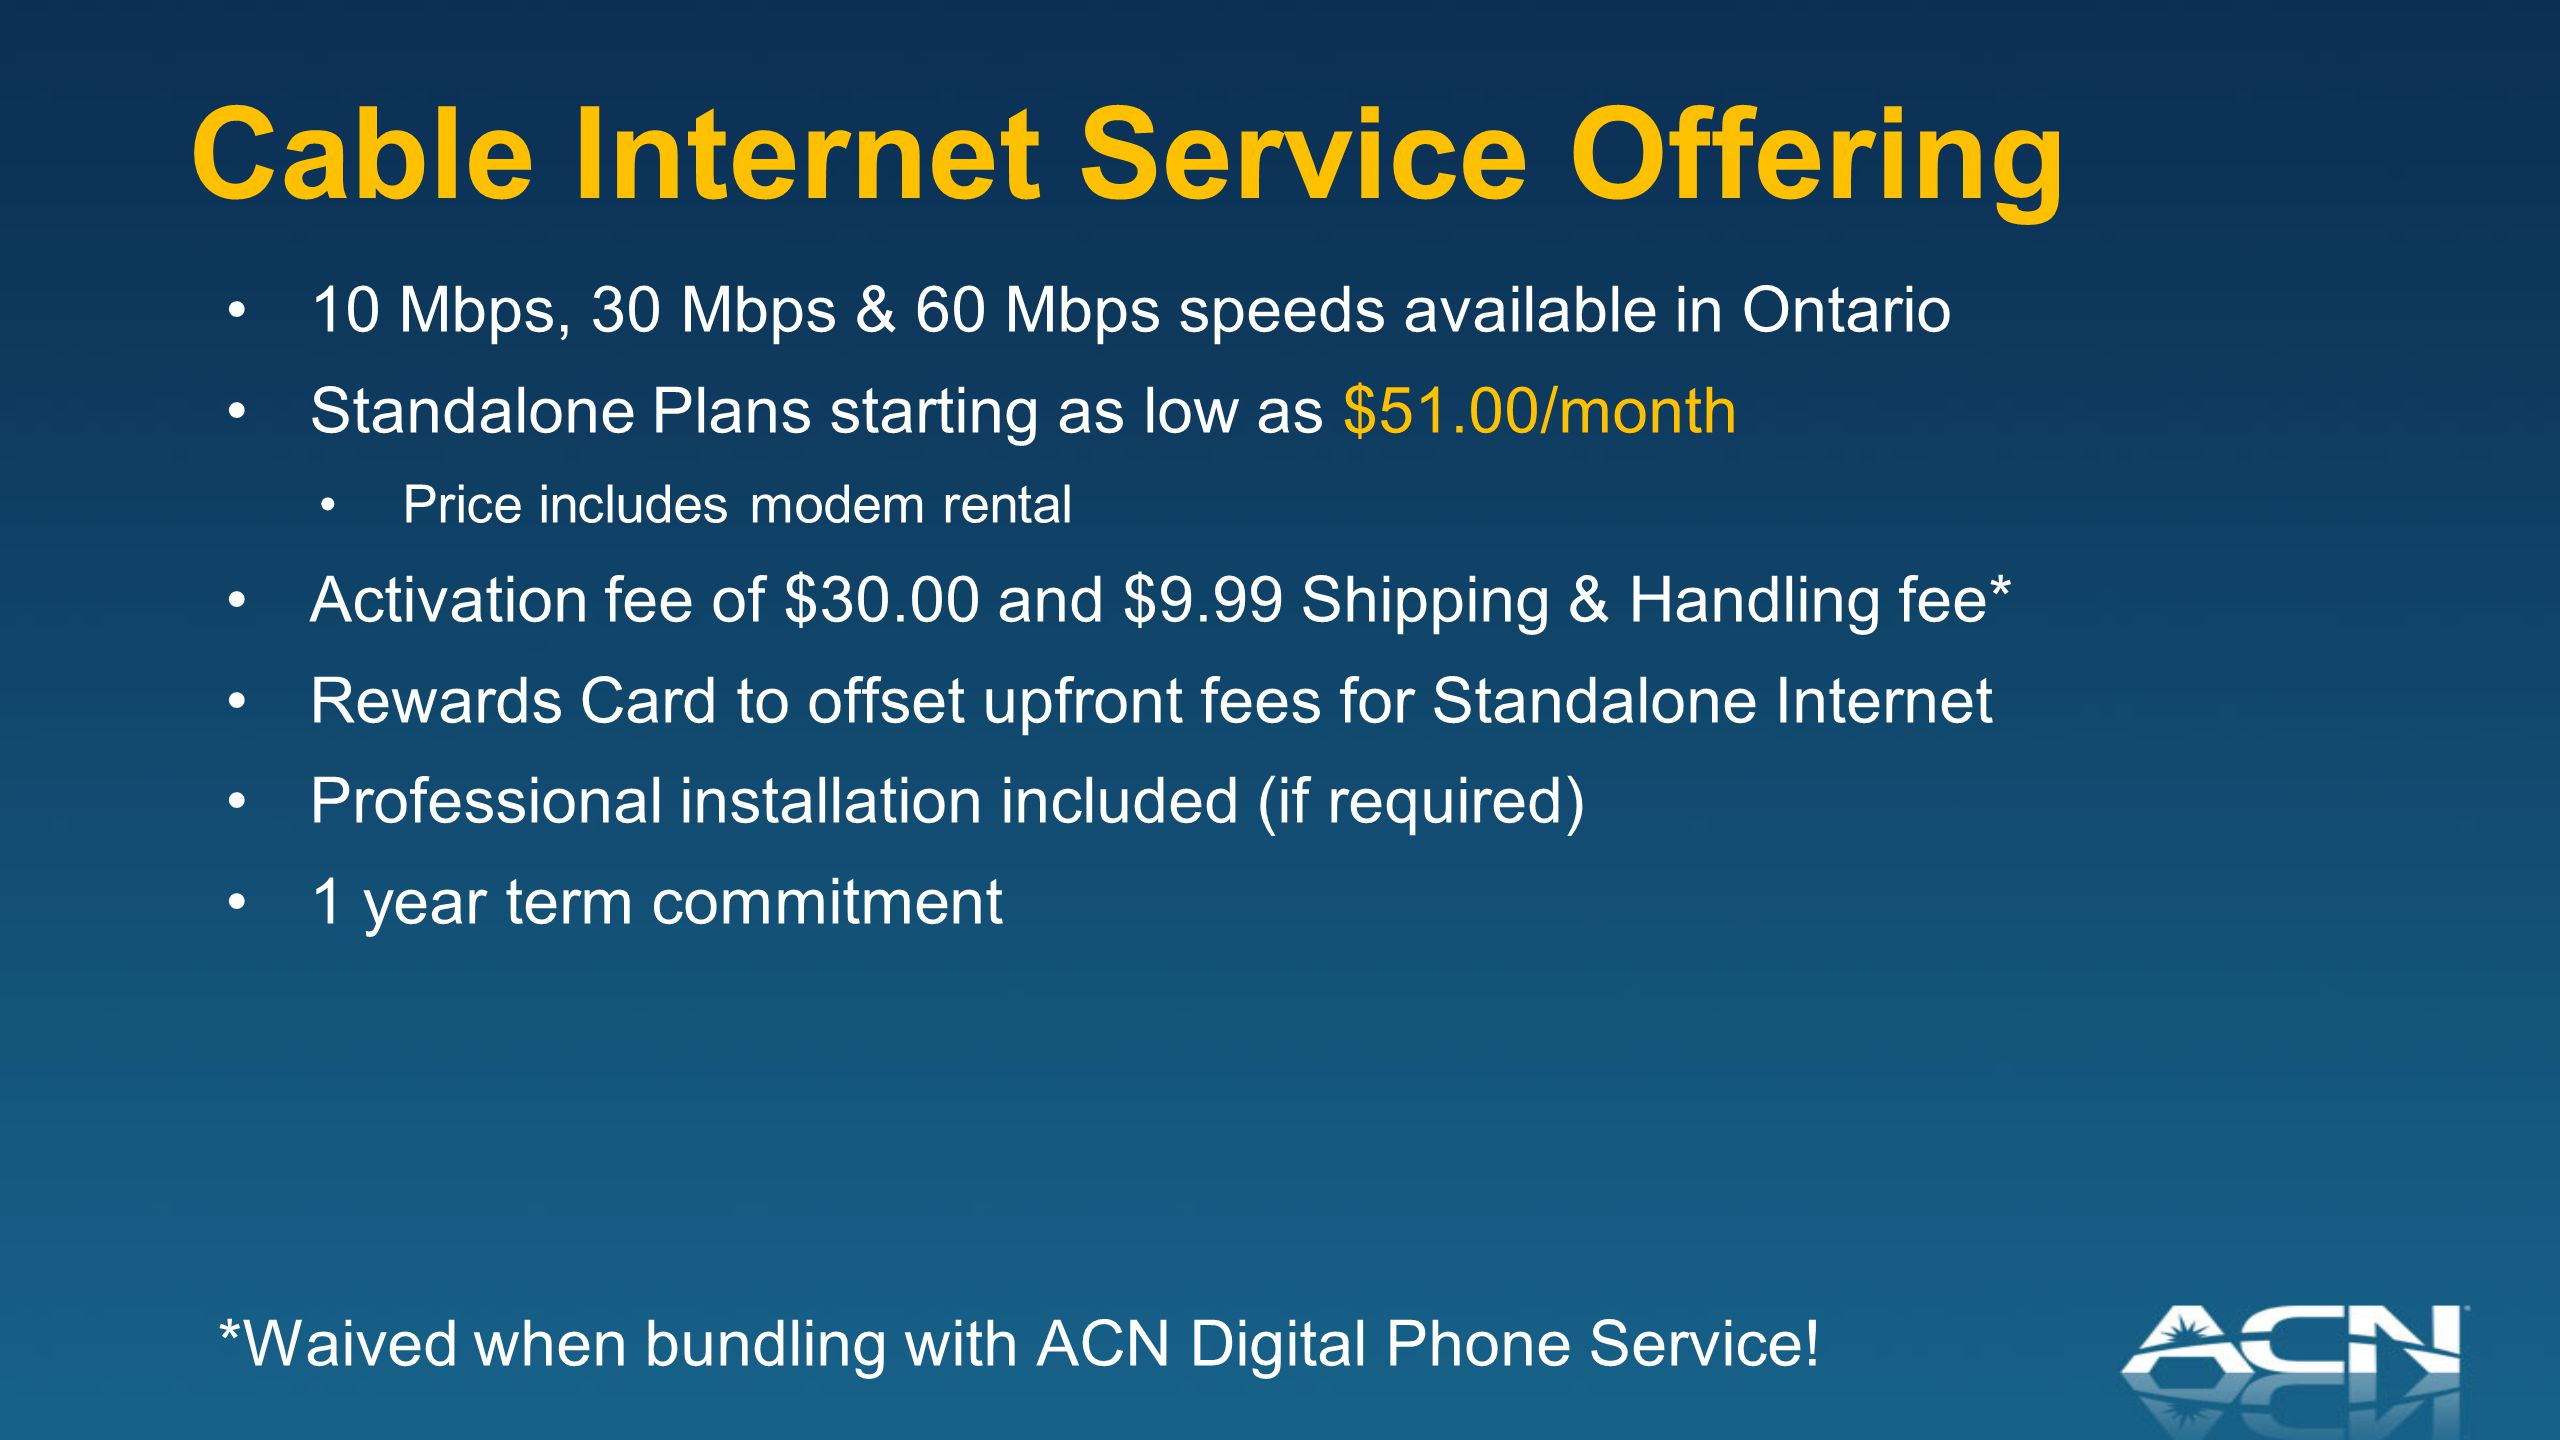 Rogers High Speed Internet ACN's Cable Internet Pricing: Competitively priced plans (price includes modem rental) $40 Rewards Card to offset upfront fees on Standalone and $50 when bundled with DPS (Transfer) *Up to speeds based on optimal conditions Download Speed* Upload Speed*With DPS (Transfer Number) Standalone 10 Mbps1 Mbps$75.99/month$51.00/month 30 Mbps5 Mbps$80.99/month$56.00/month 60 Mbps10 Mbps$90.99/month$66.00/month Activation FeeWaived$30.00 Shipping & Handling FeeWaived$9.99 Equipment Fee (ATA)WaivedN/A Term1 Year